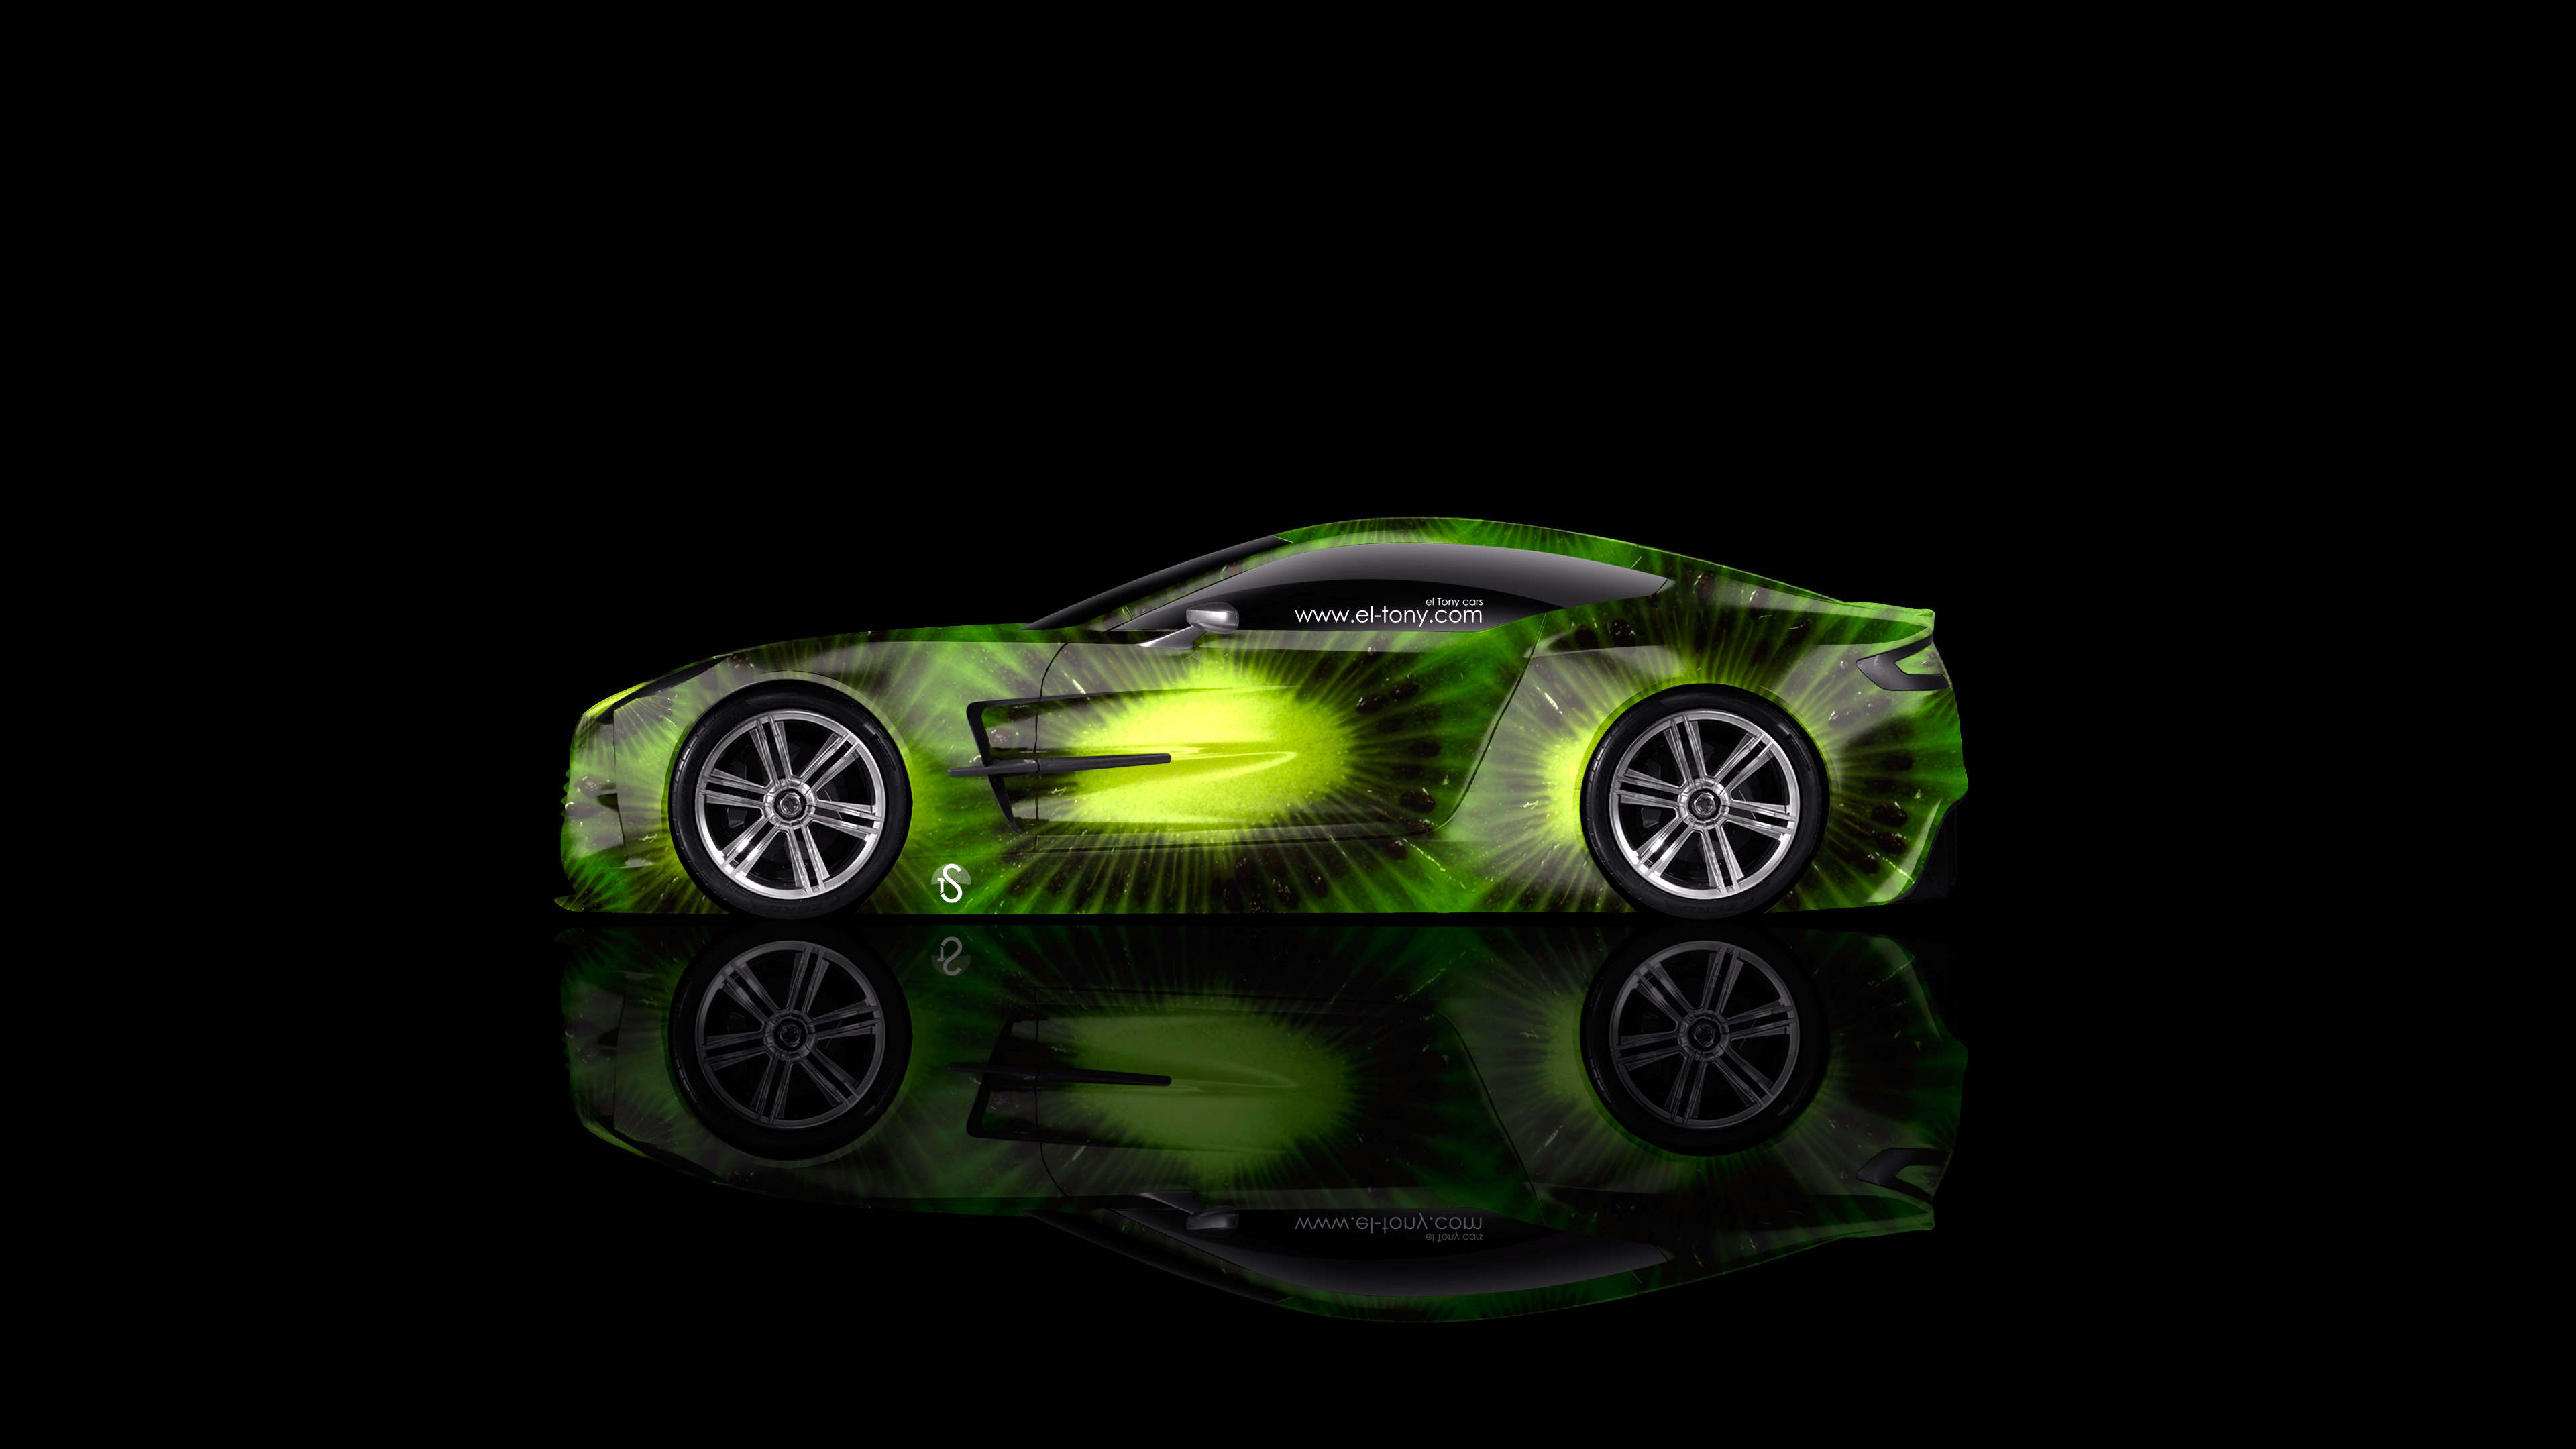 Merveilleux Aston Martin One77 Side Kiwi Aerography Car 2014